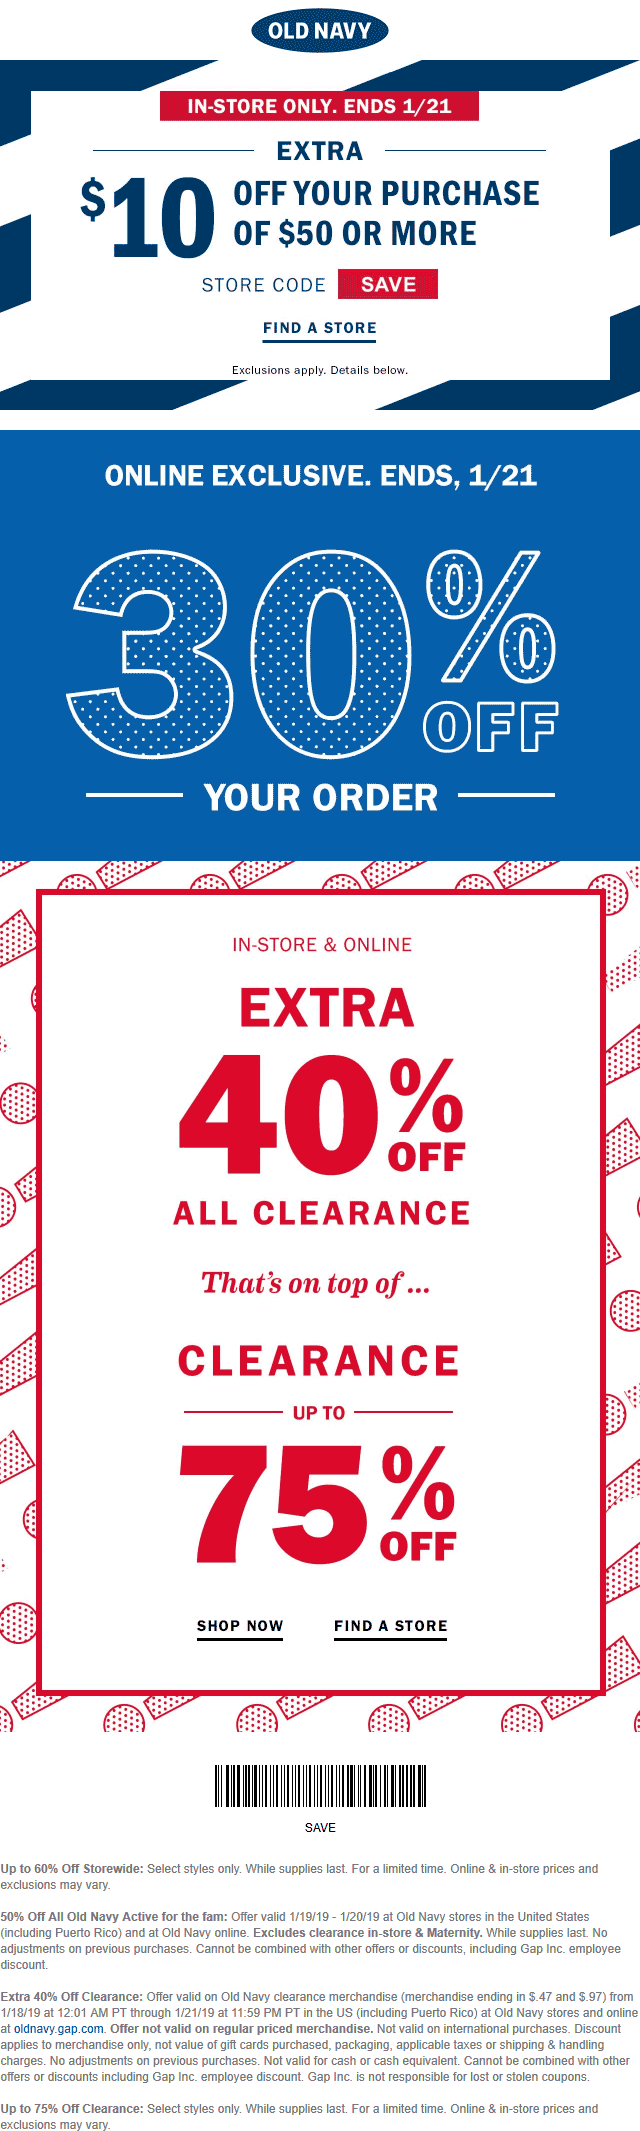 Old Navy Coupon November 2019 $10 off $50 at Old Navy, or 30% online no code needed